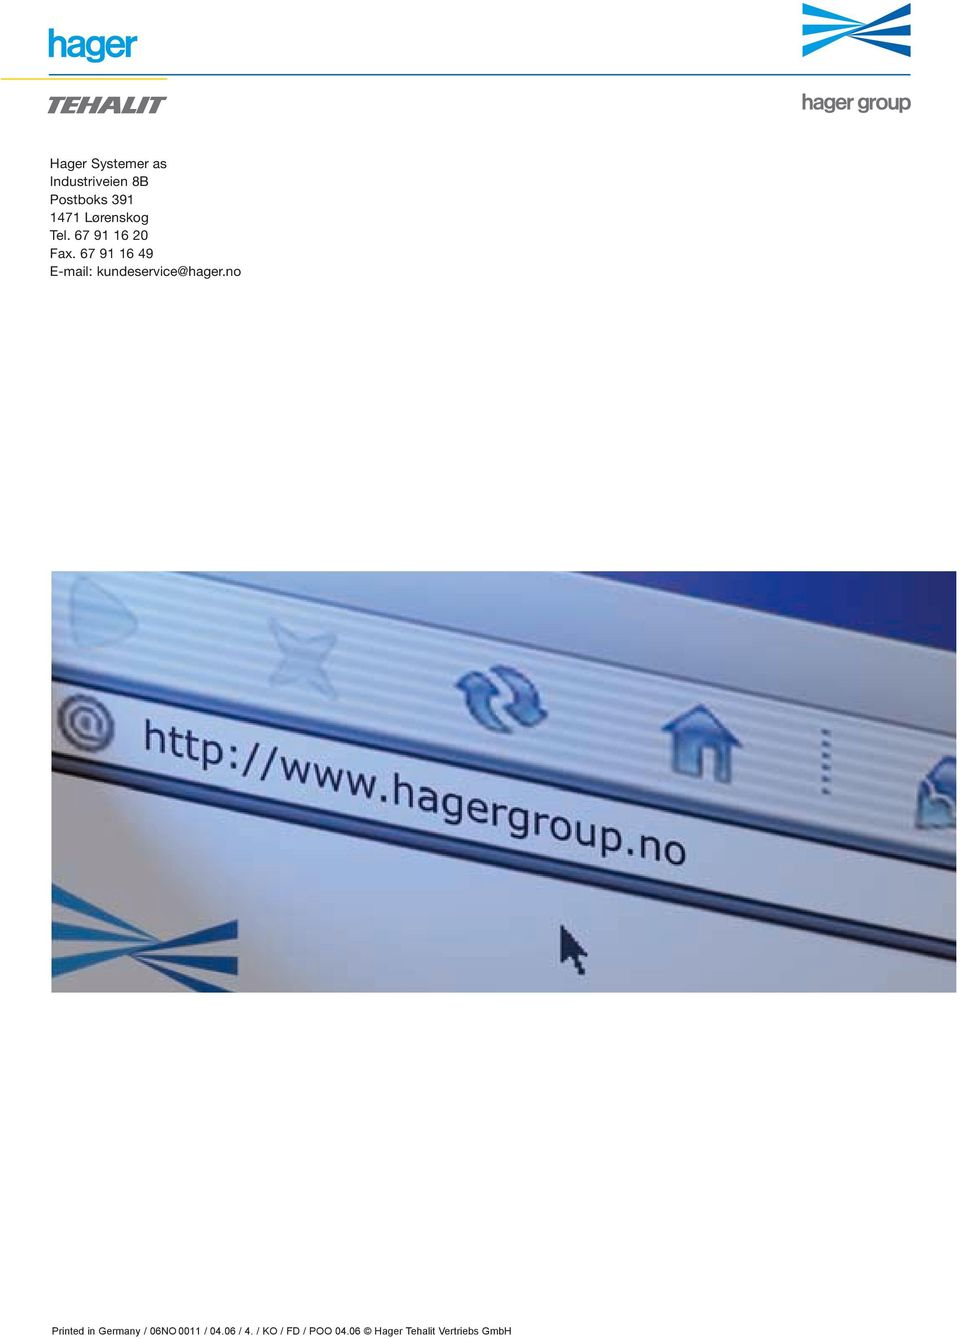 67 91 16 49 E-mail: kundeservice@hager.